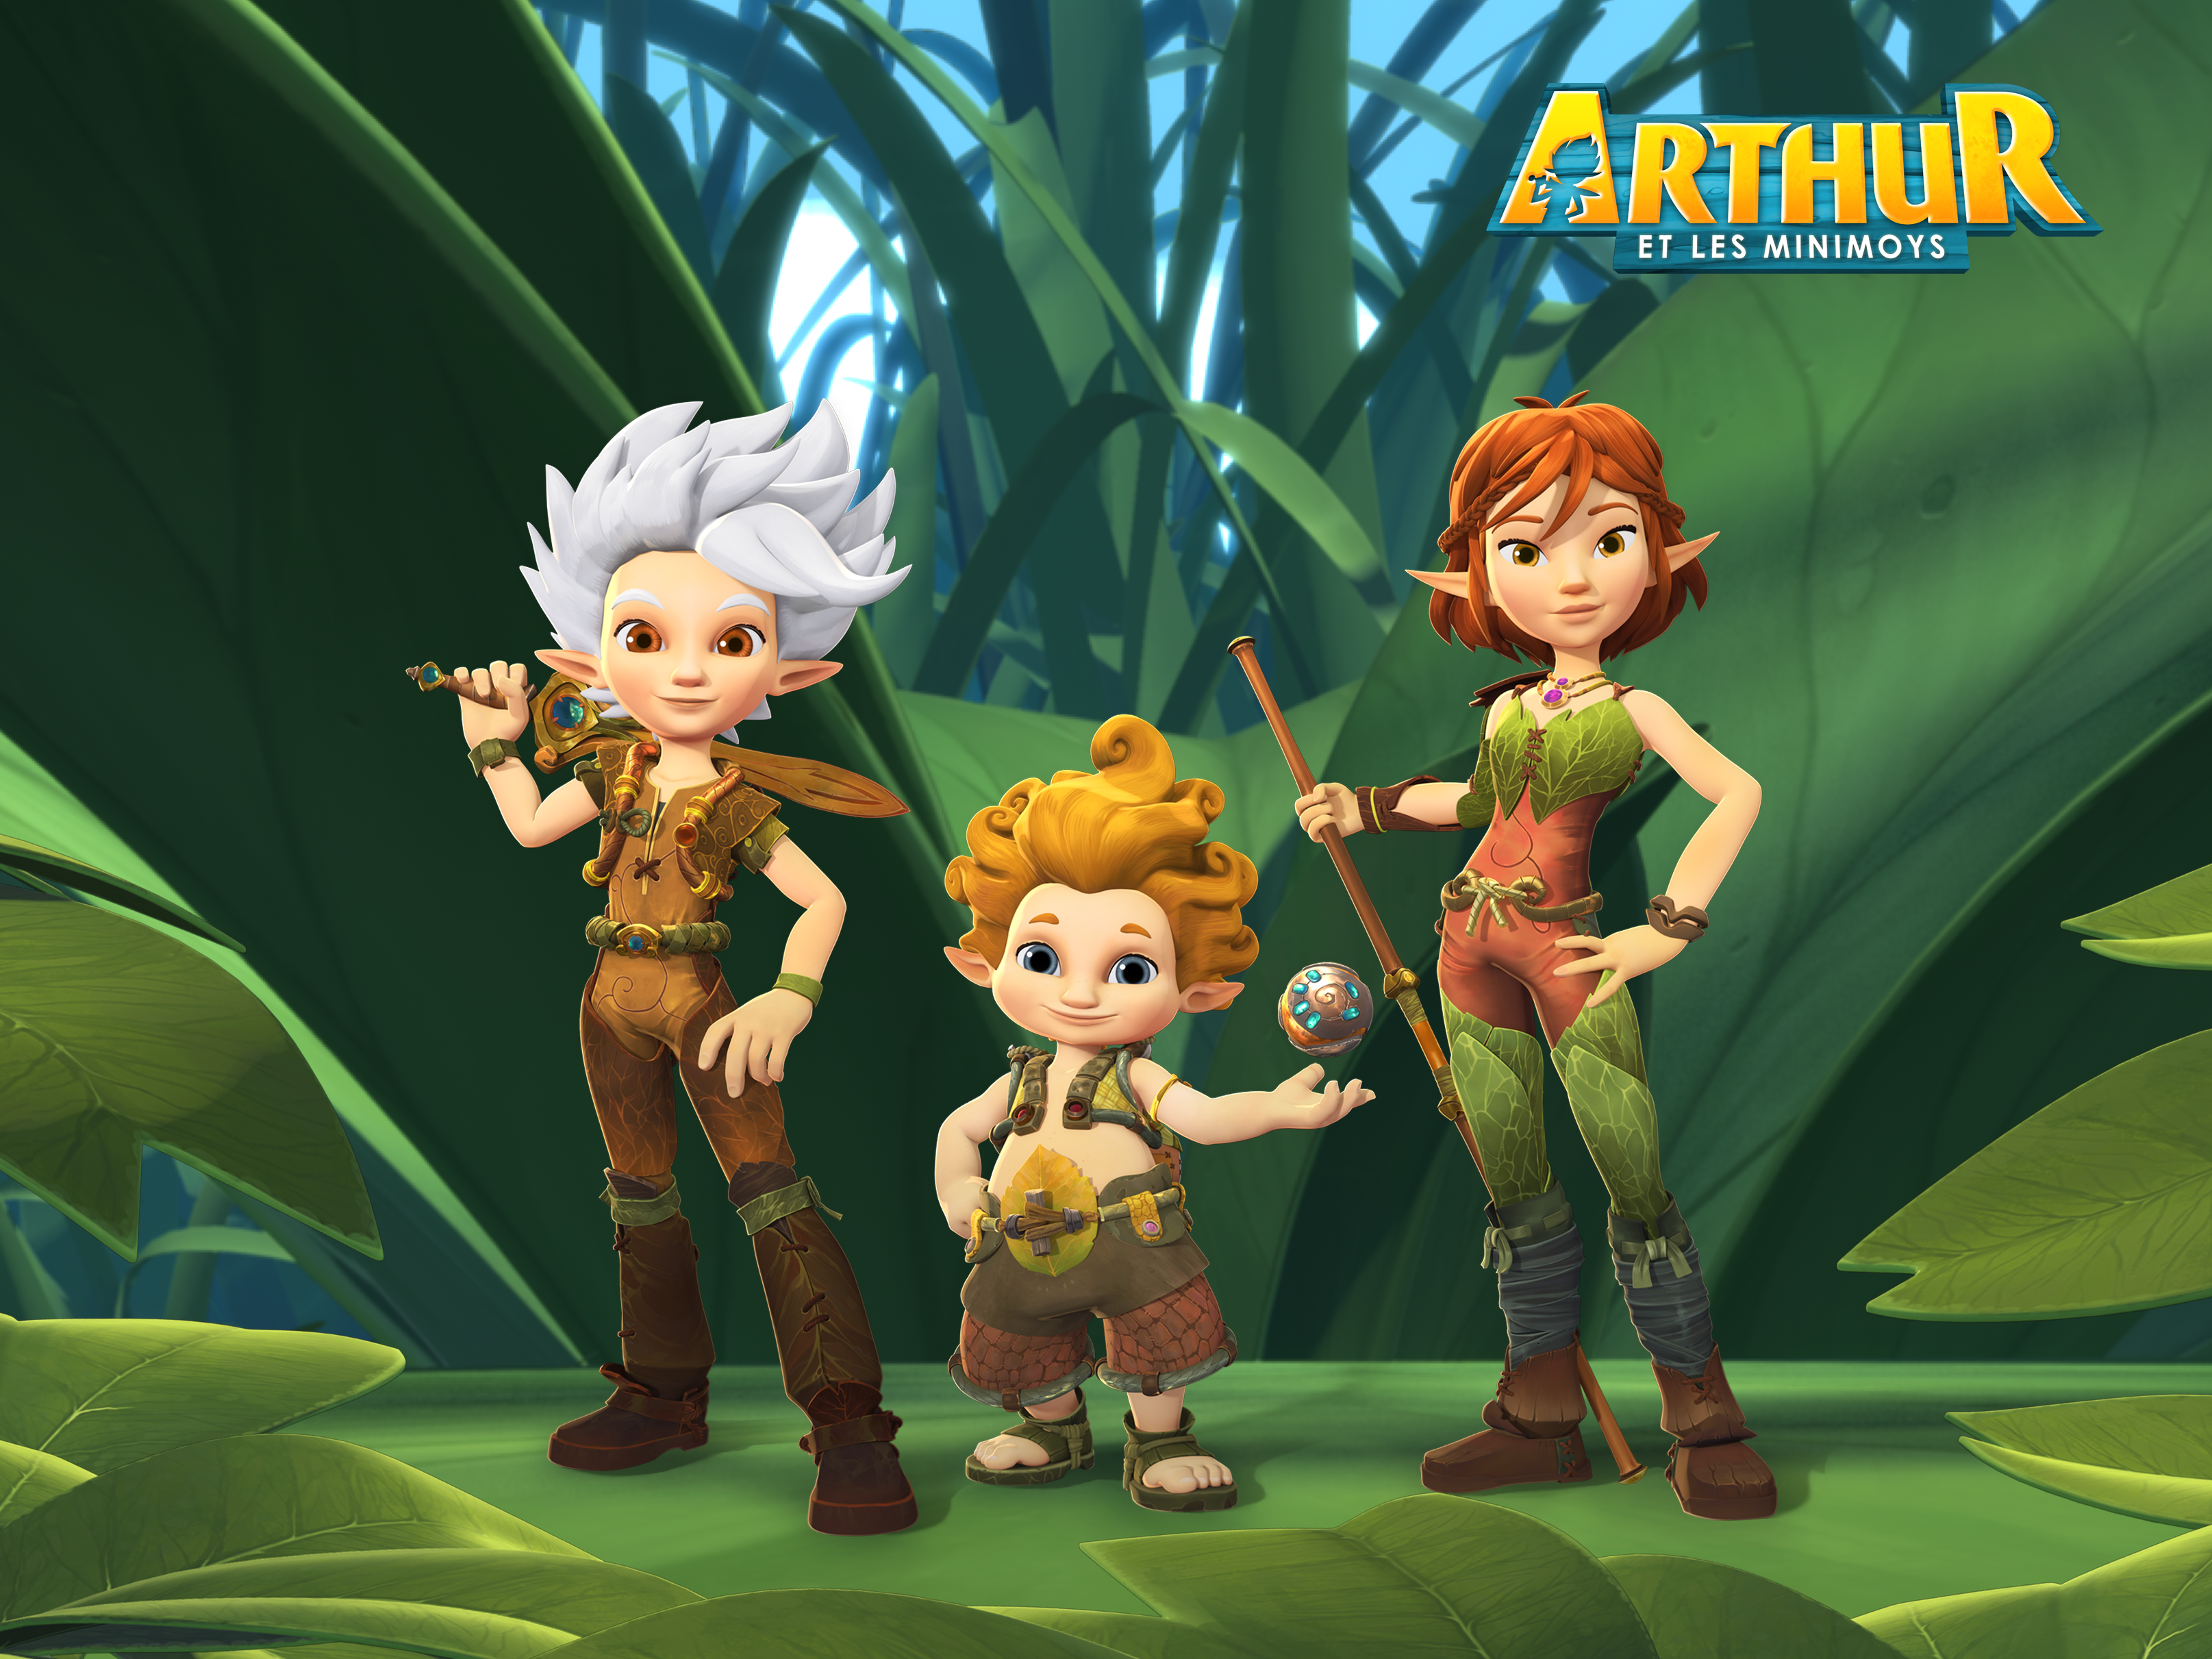 Arthur and the Minimoys - Studio 100 Animation